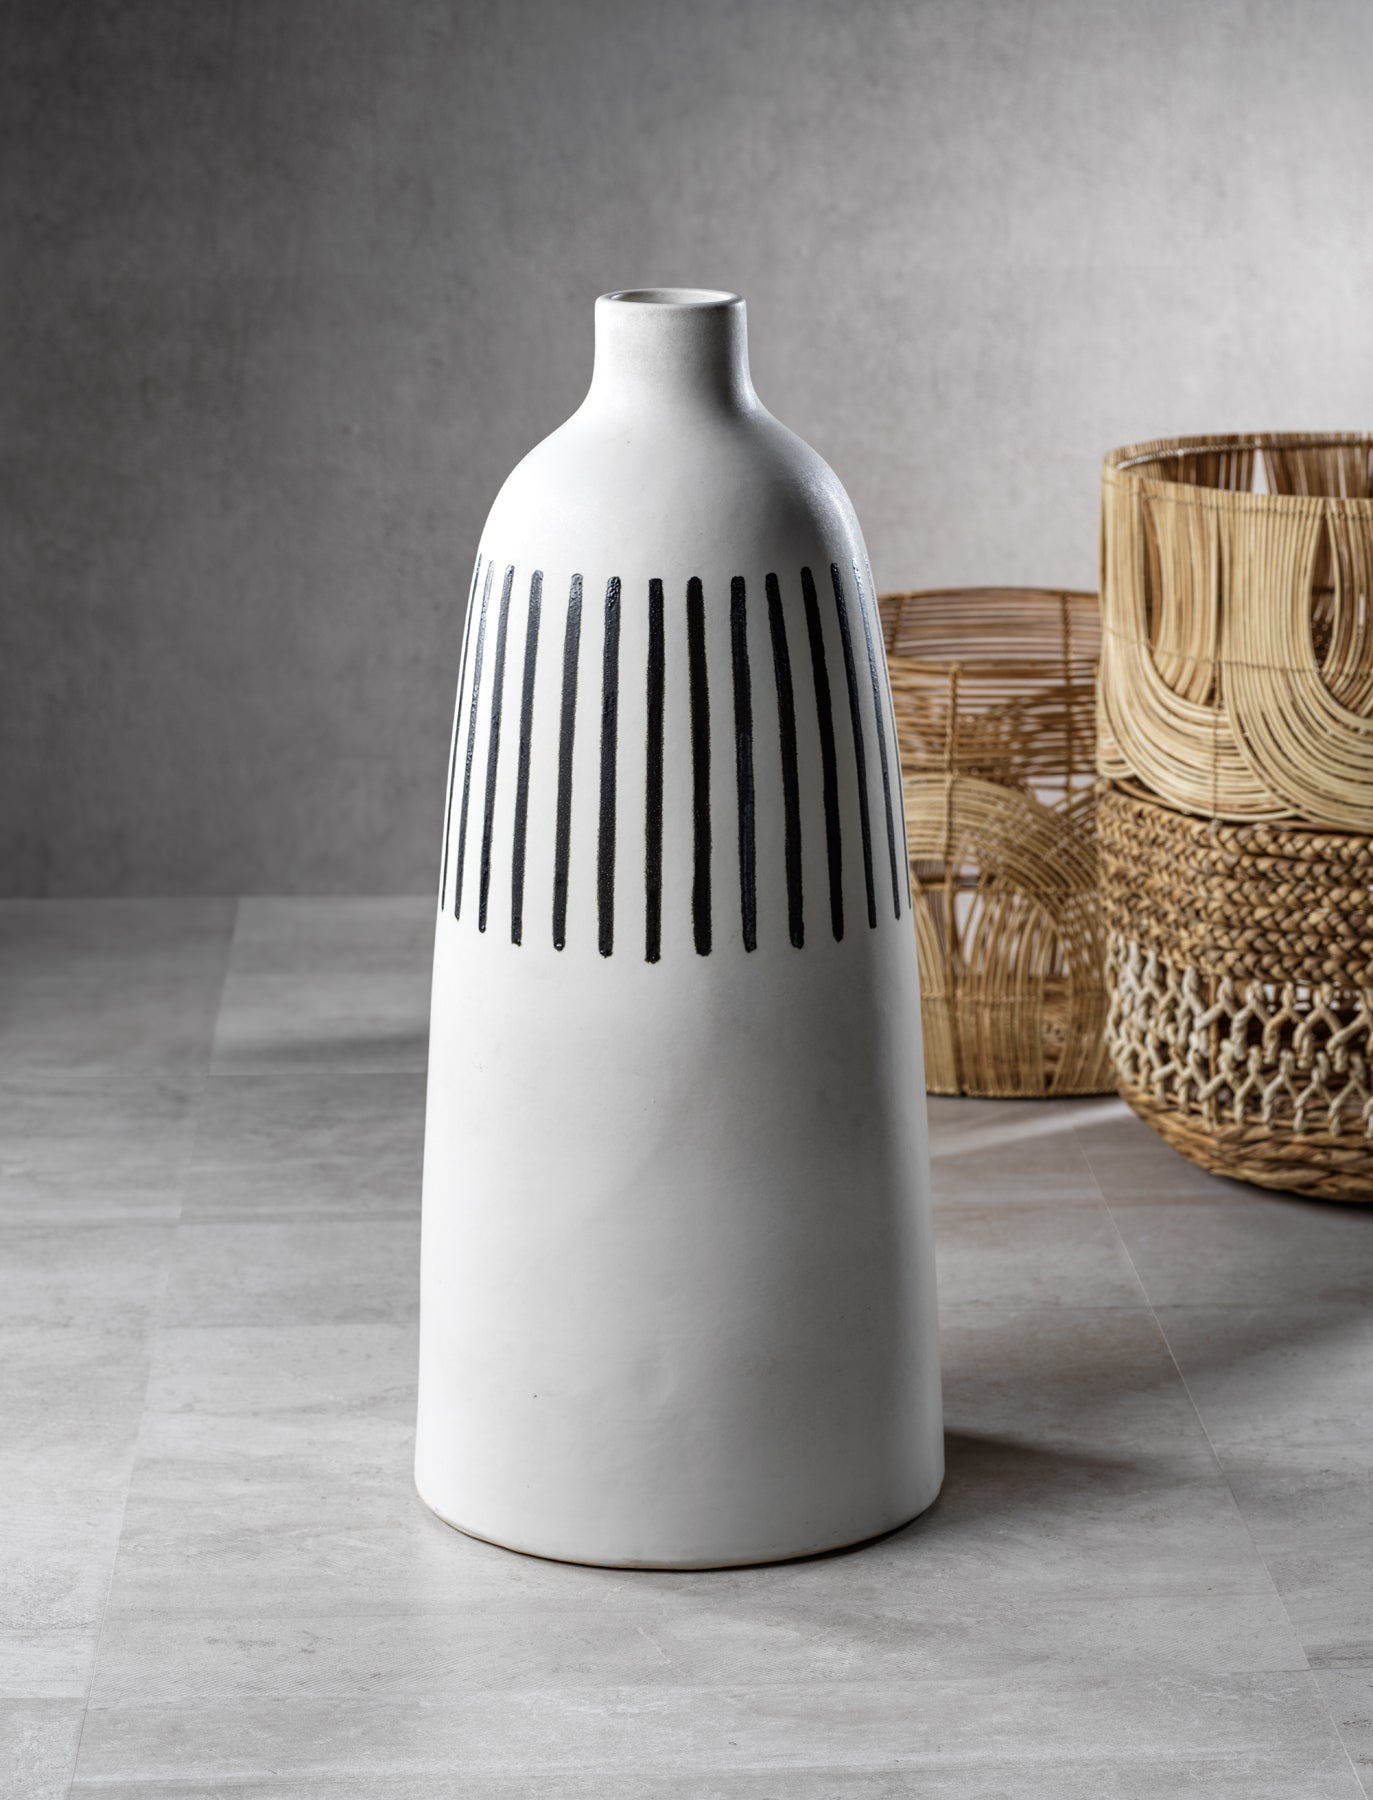 Salento All White Earthenware Vase w/ Black Stripes - CARLYLE AVENUE